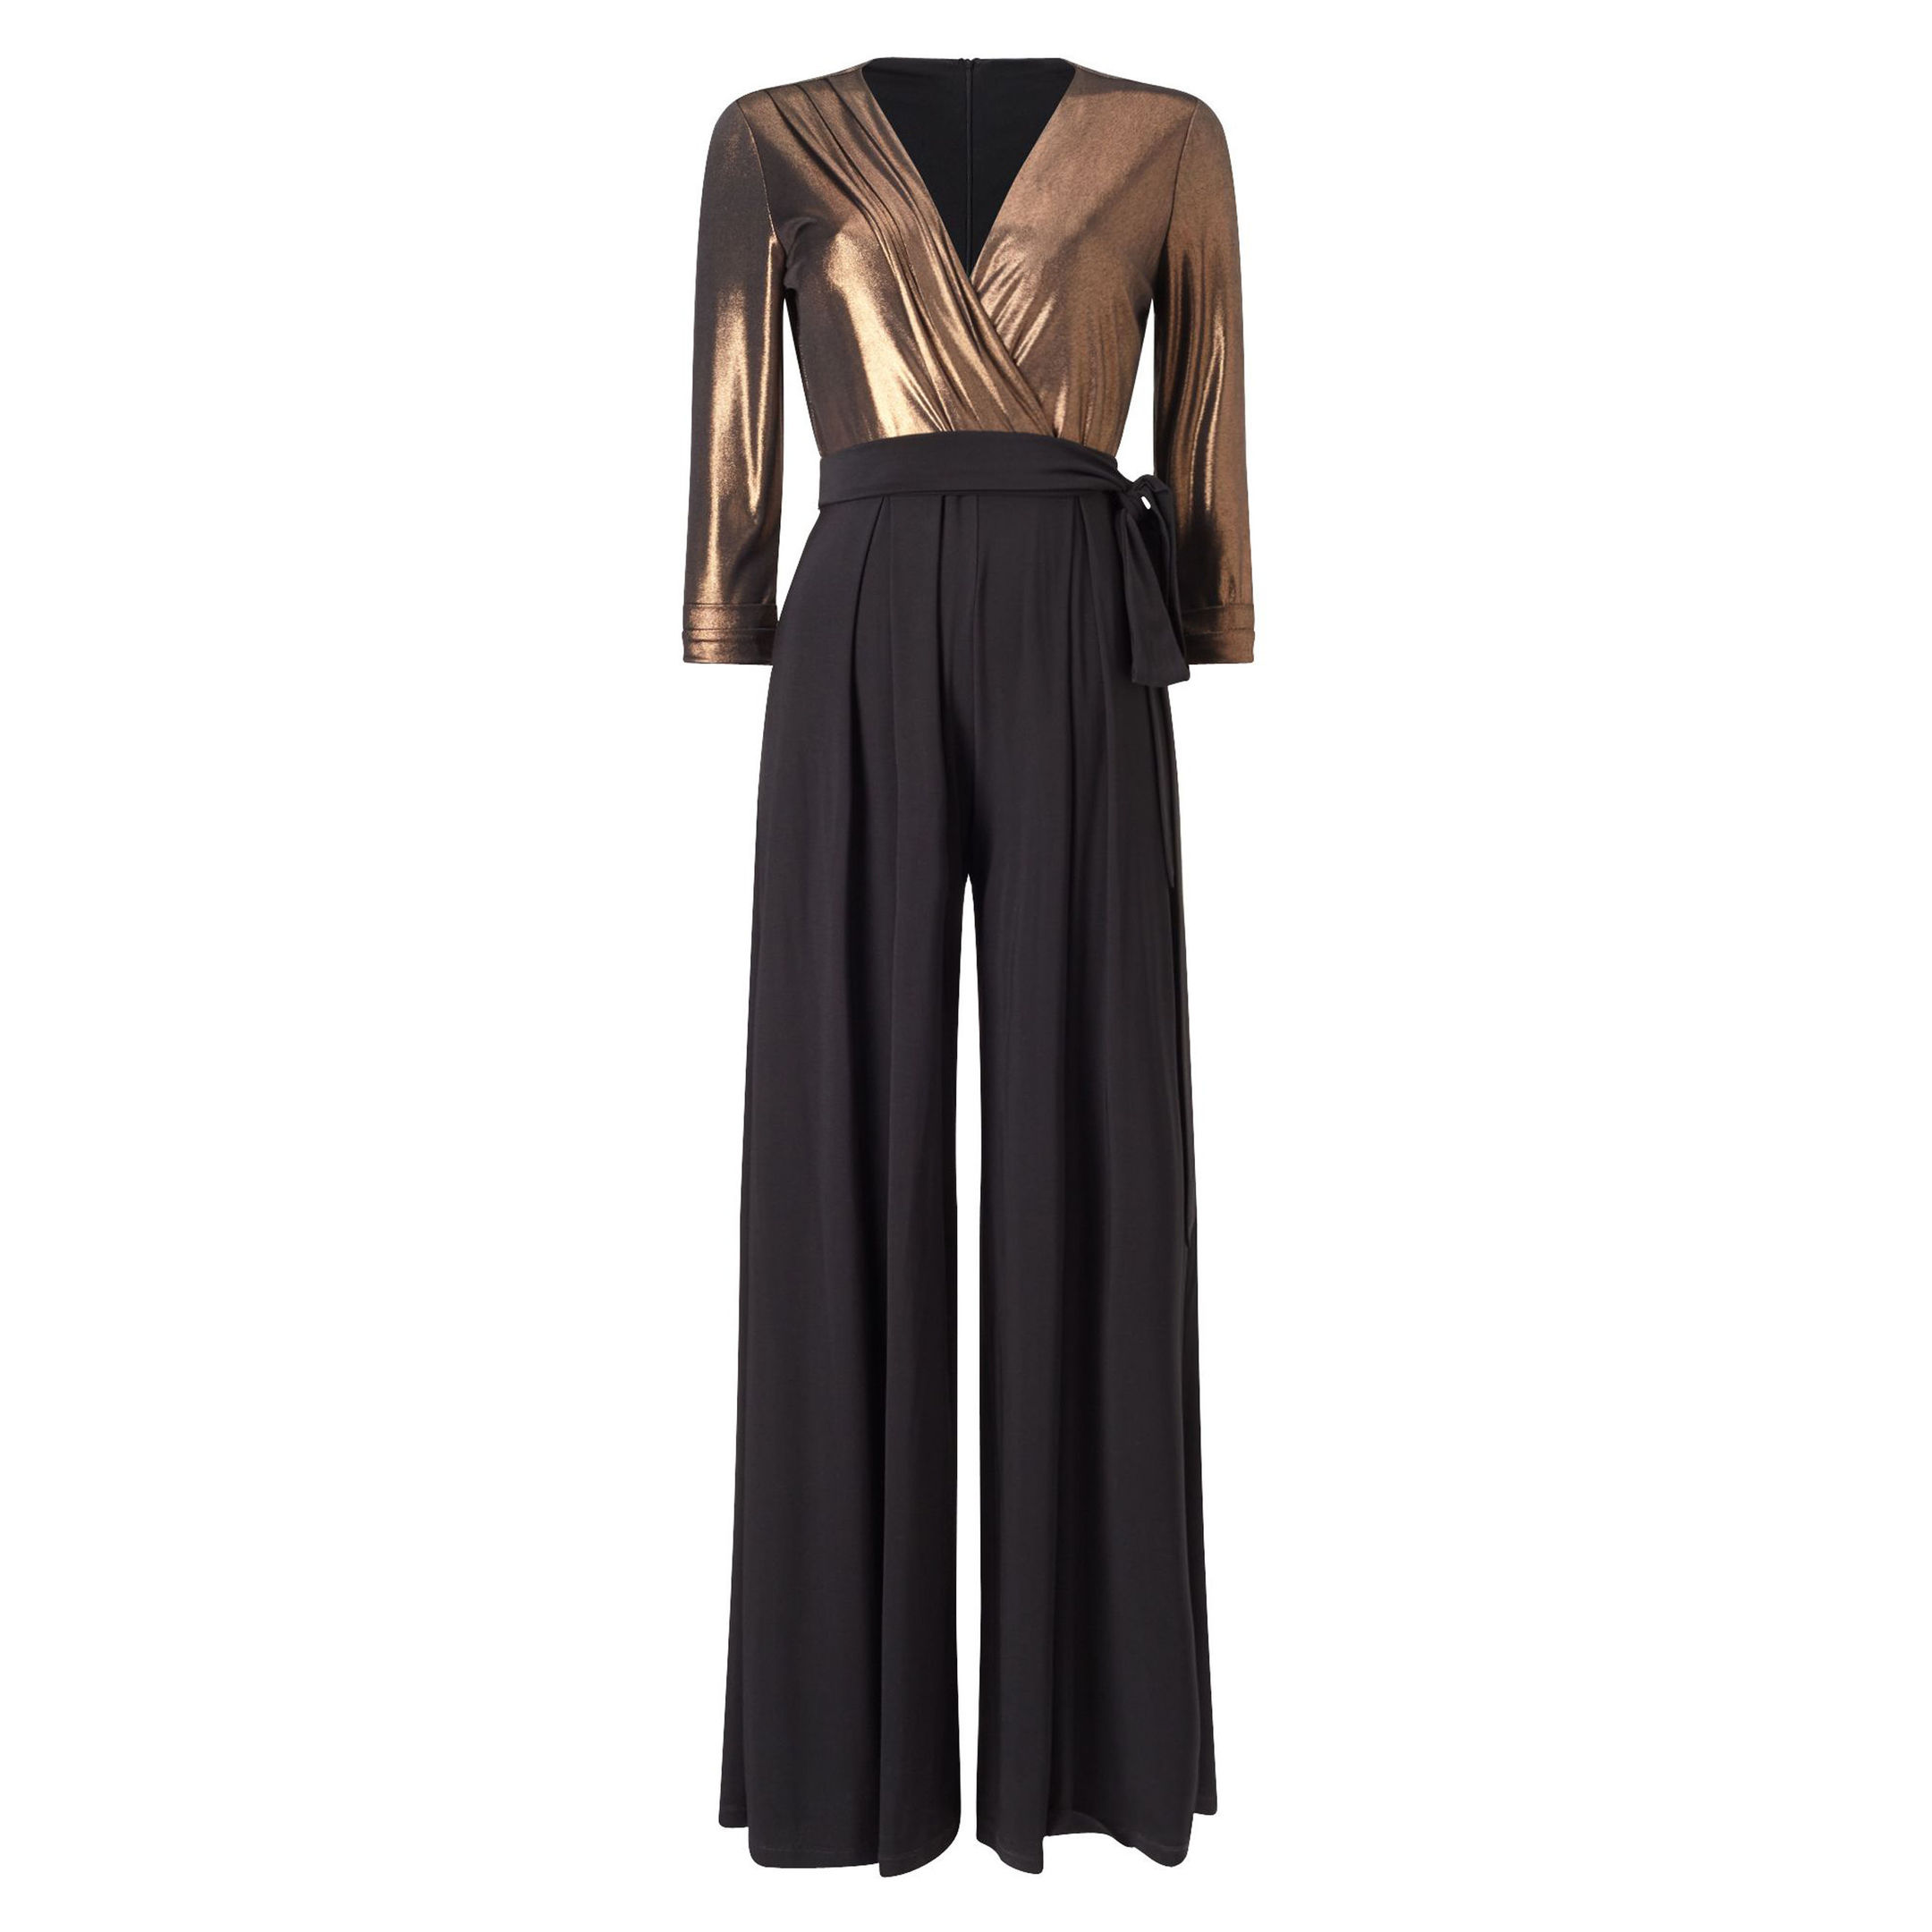 Gilty pleasure... Bronze Wrap Jumpsuit, £120, Phase Eight (www.phase-eight.com)